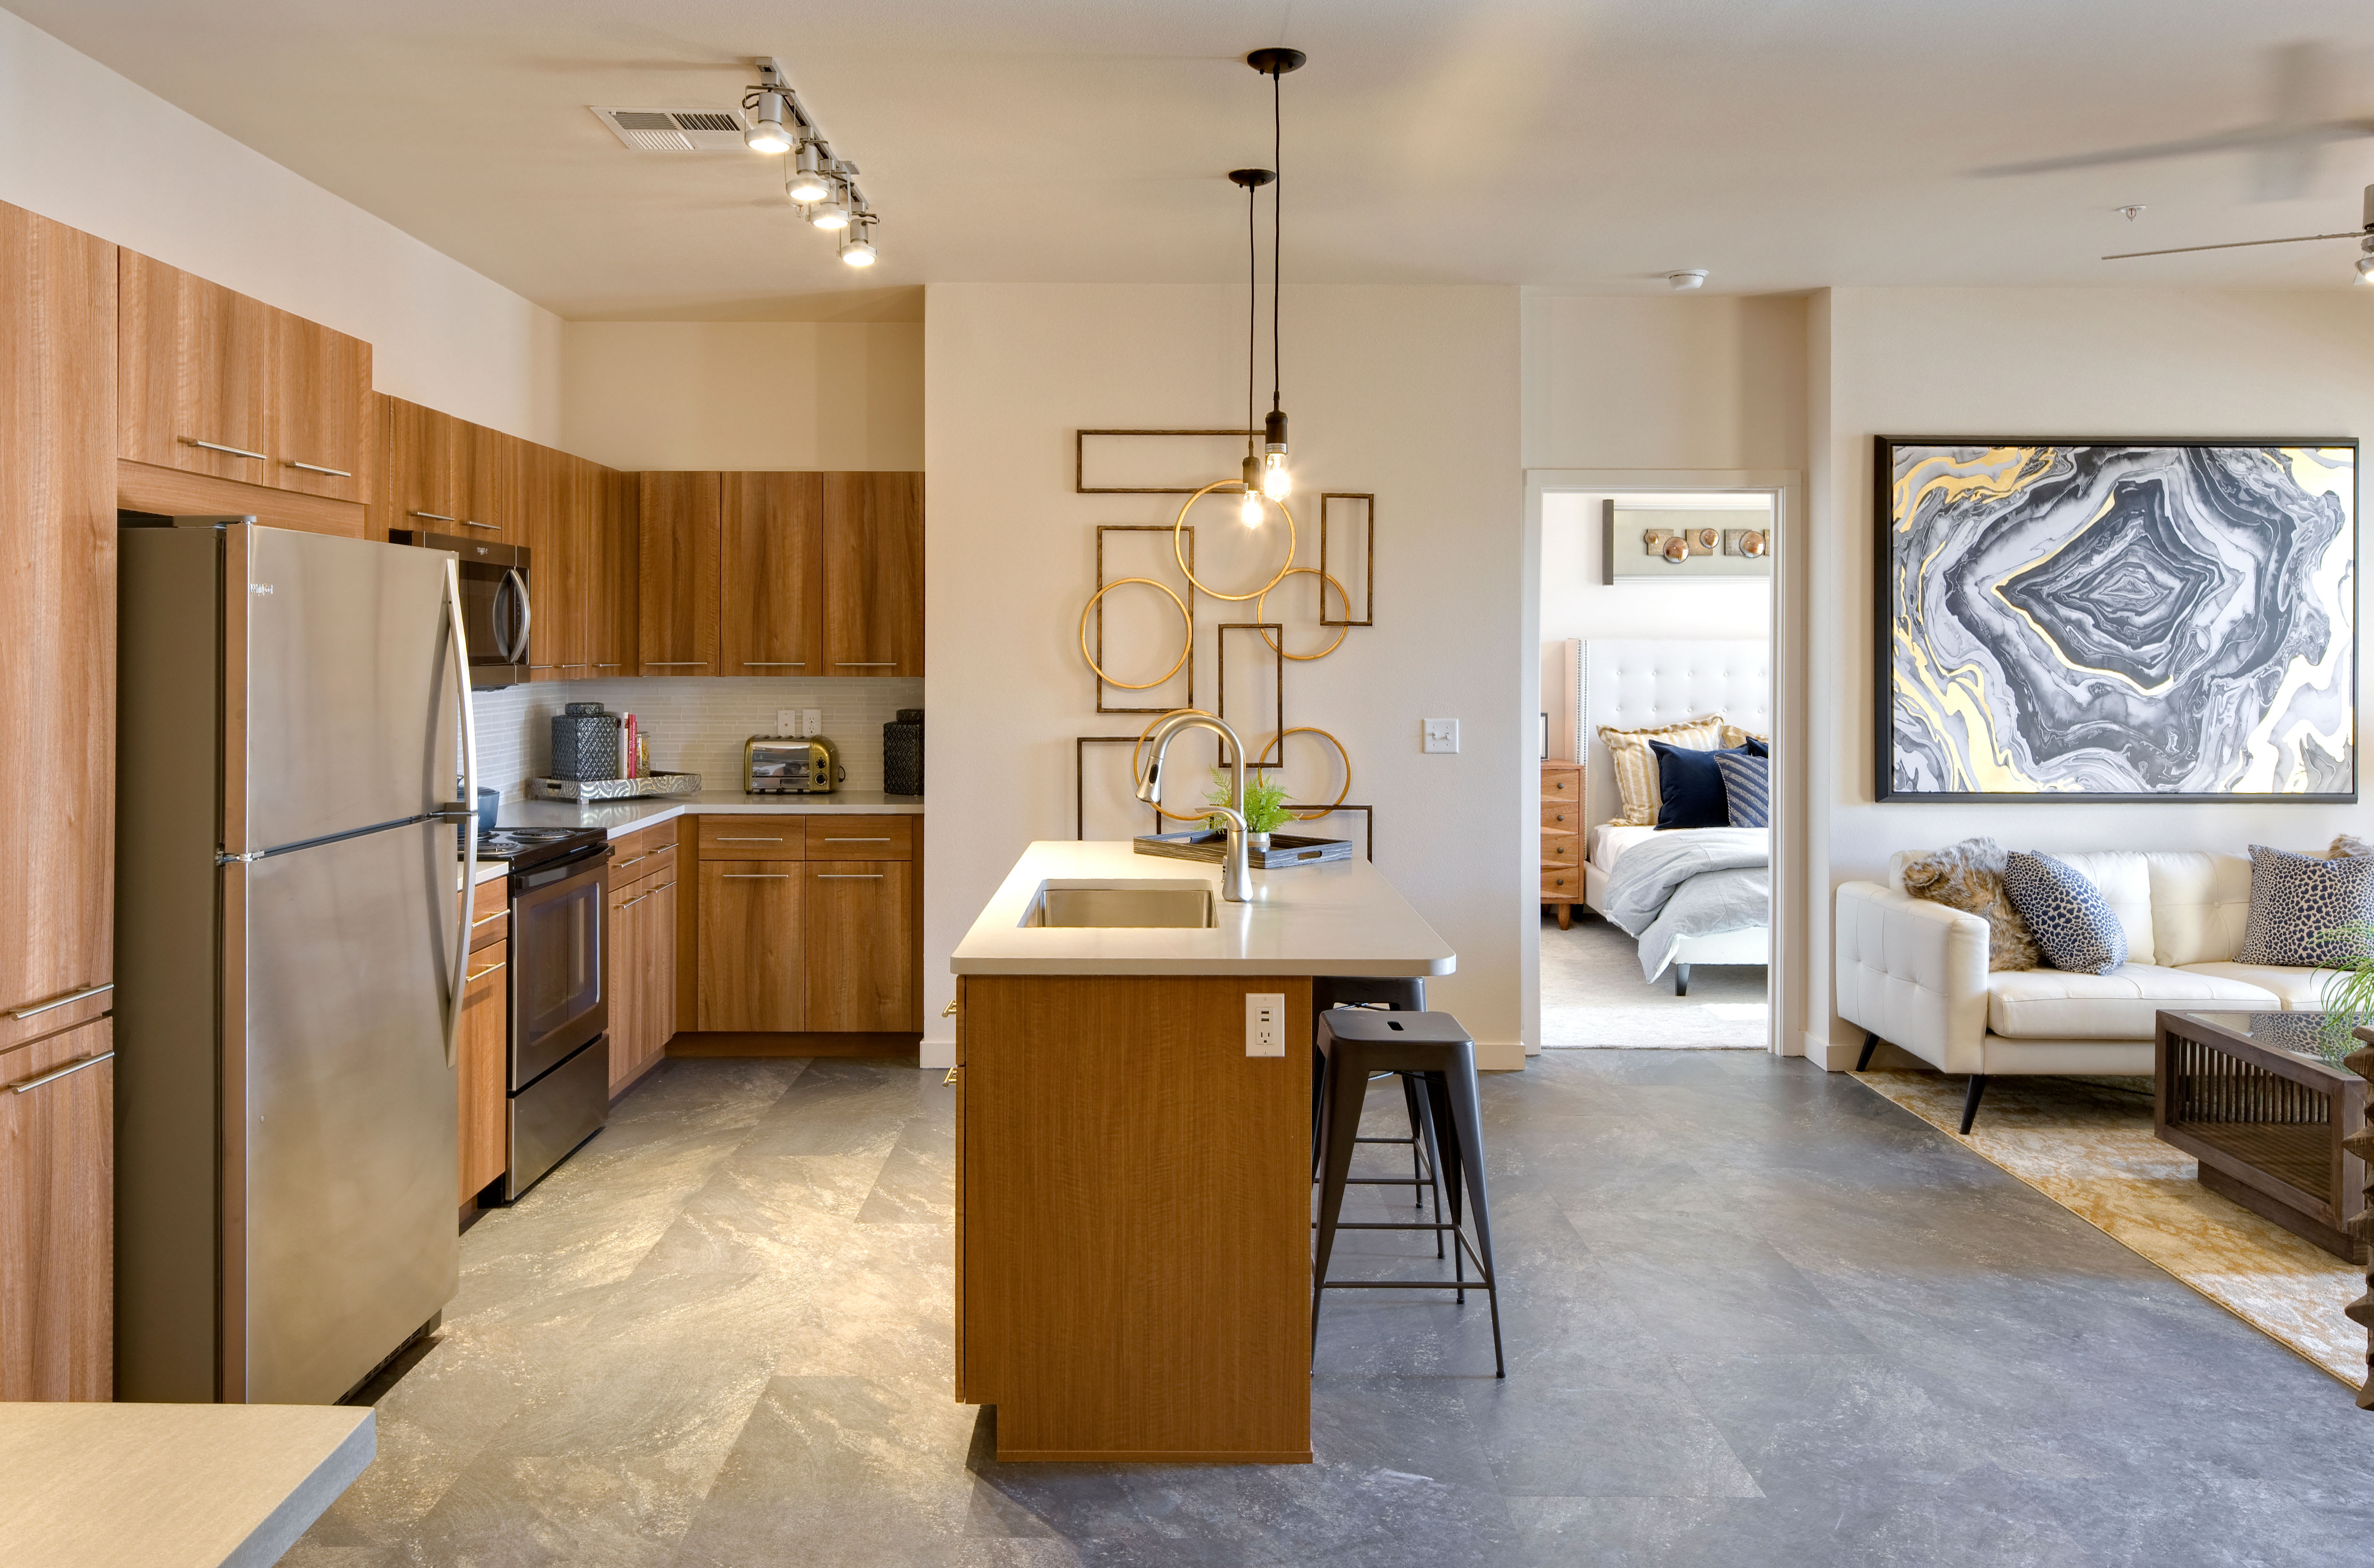 Open-concept floor plan with kitchen island and living area at Olympus Alameda in Albuquerque, New Mexico